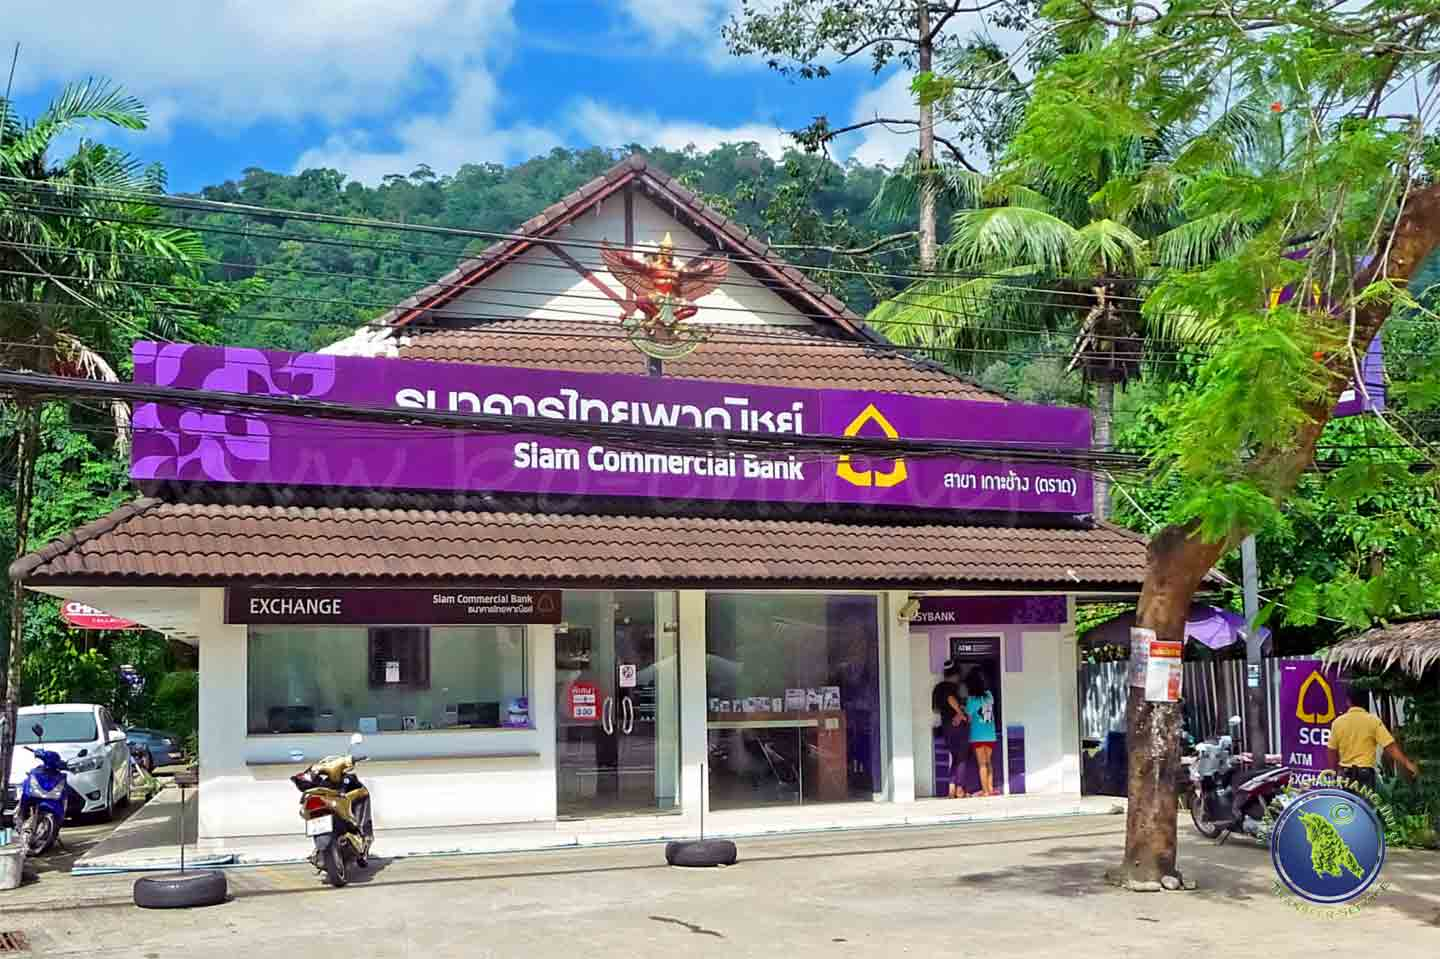 Bankfiliale auf Koh Chang in Thailand